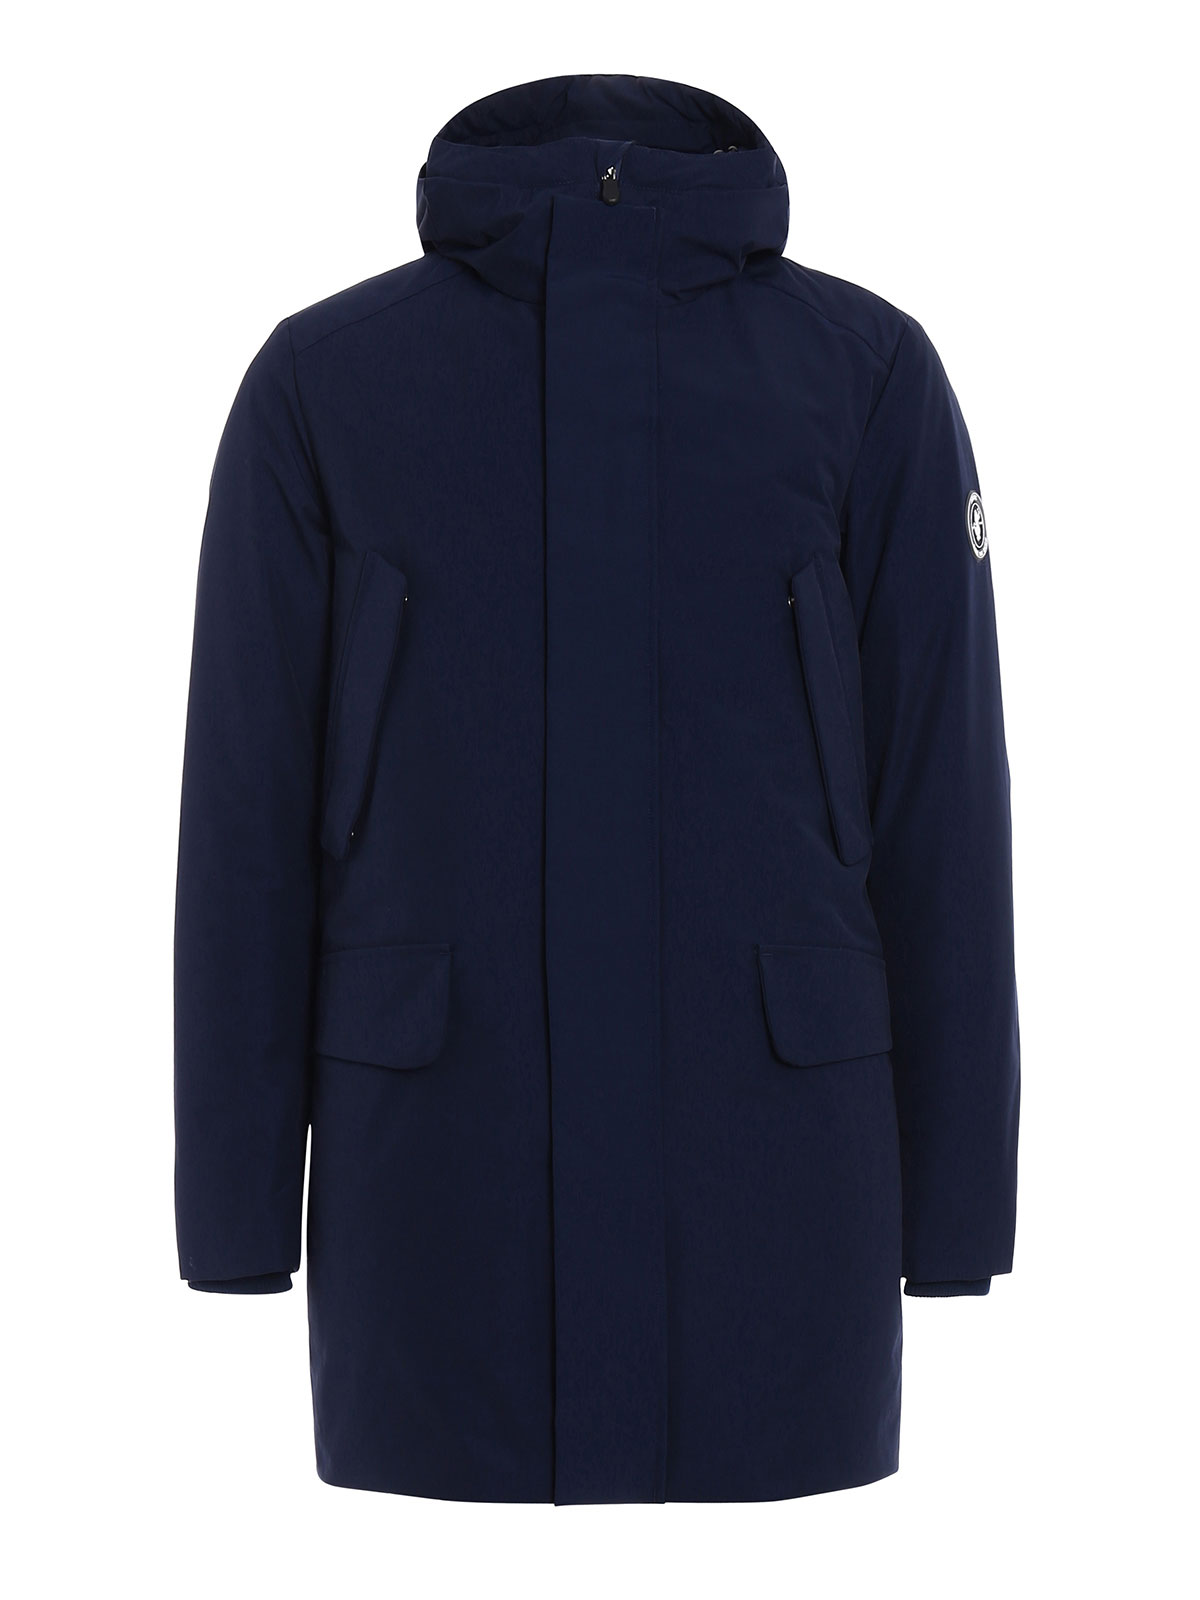 Picture of SAVE THE DUCK | Artic Parka Jacket P4318M